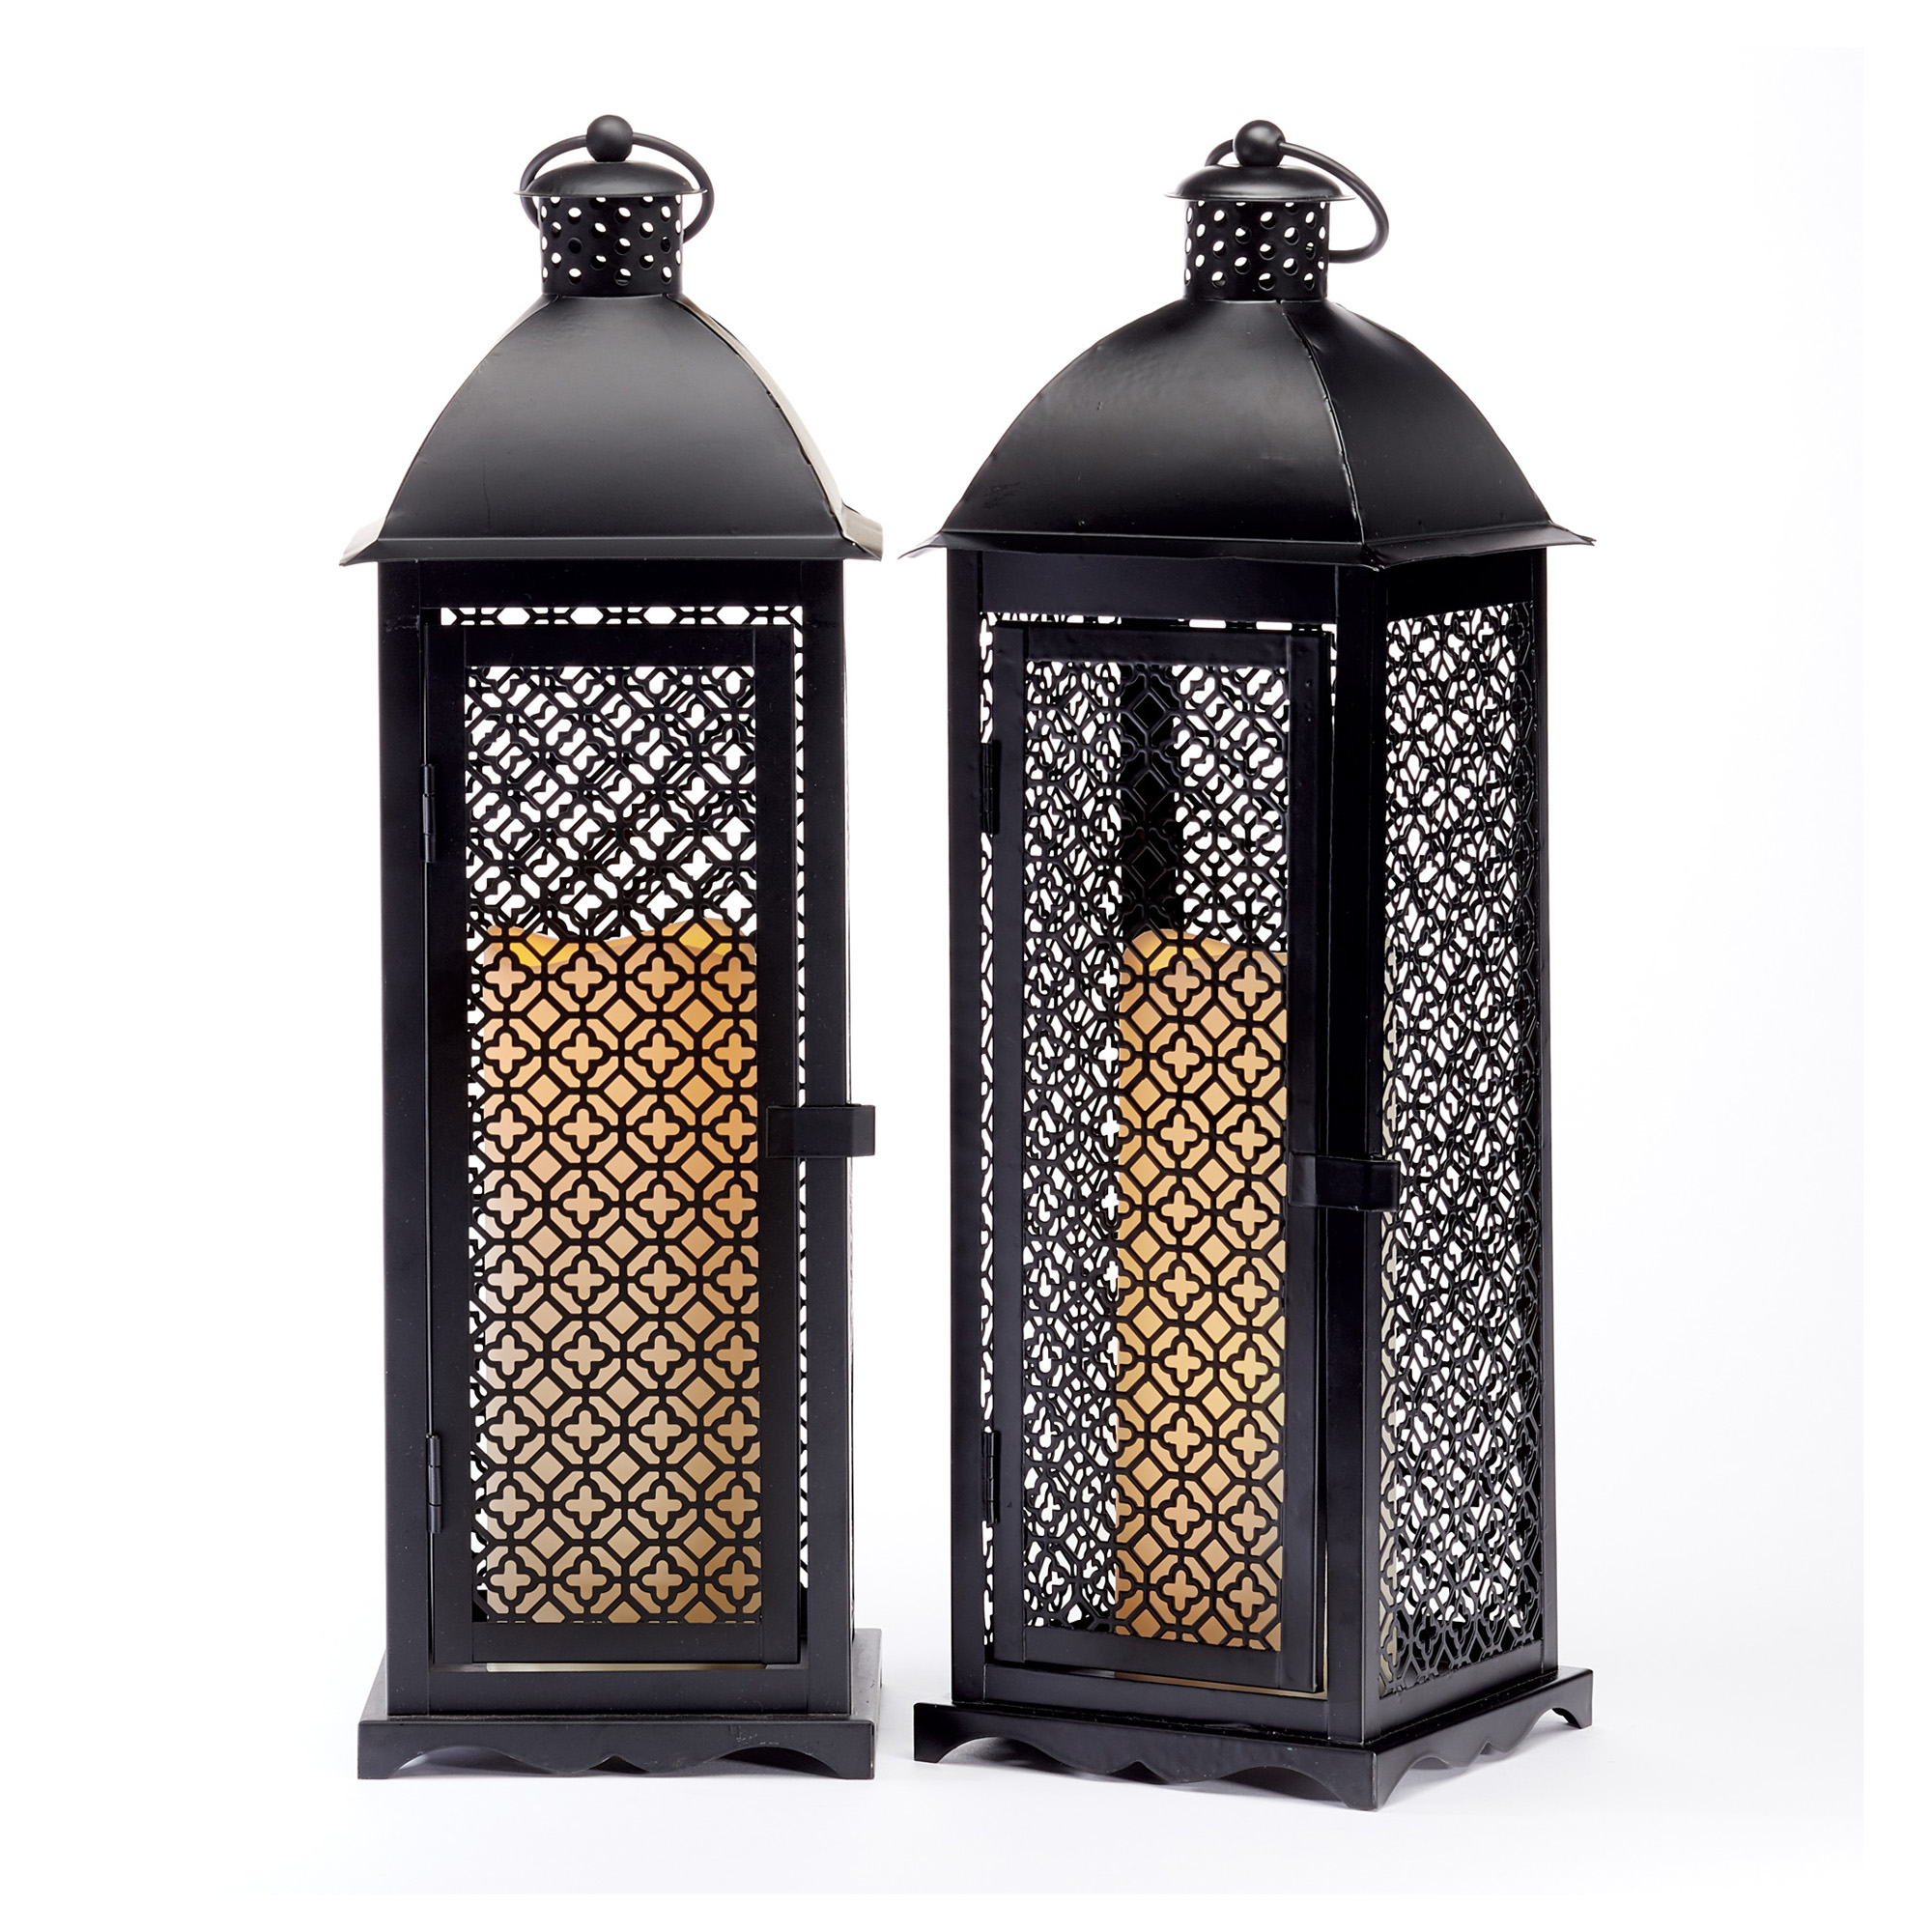 Quatrefoil Metal Flameless Lanterns, Set Of 2